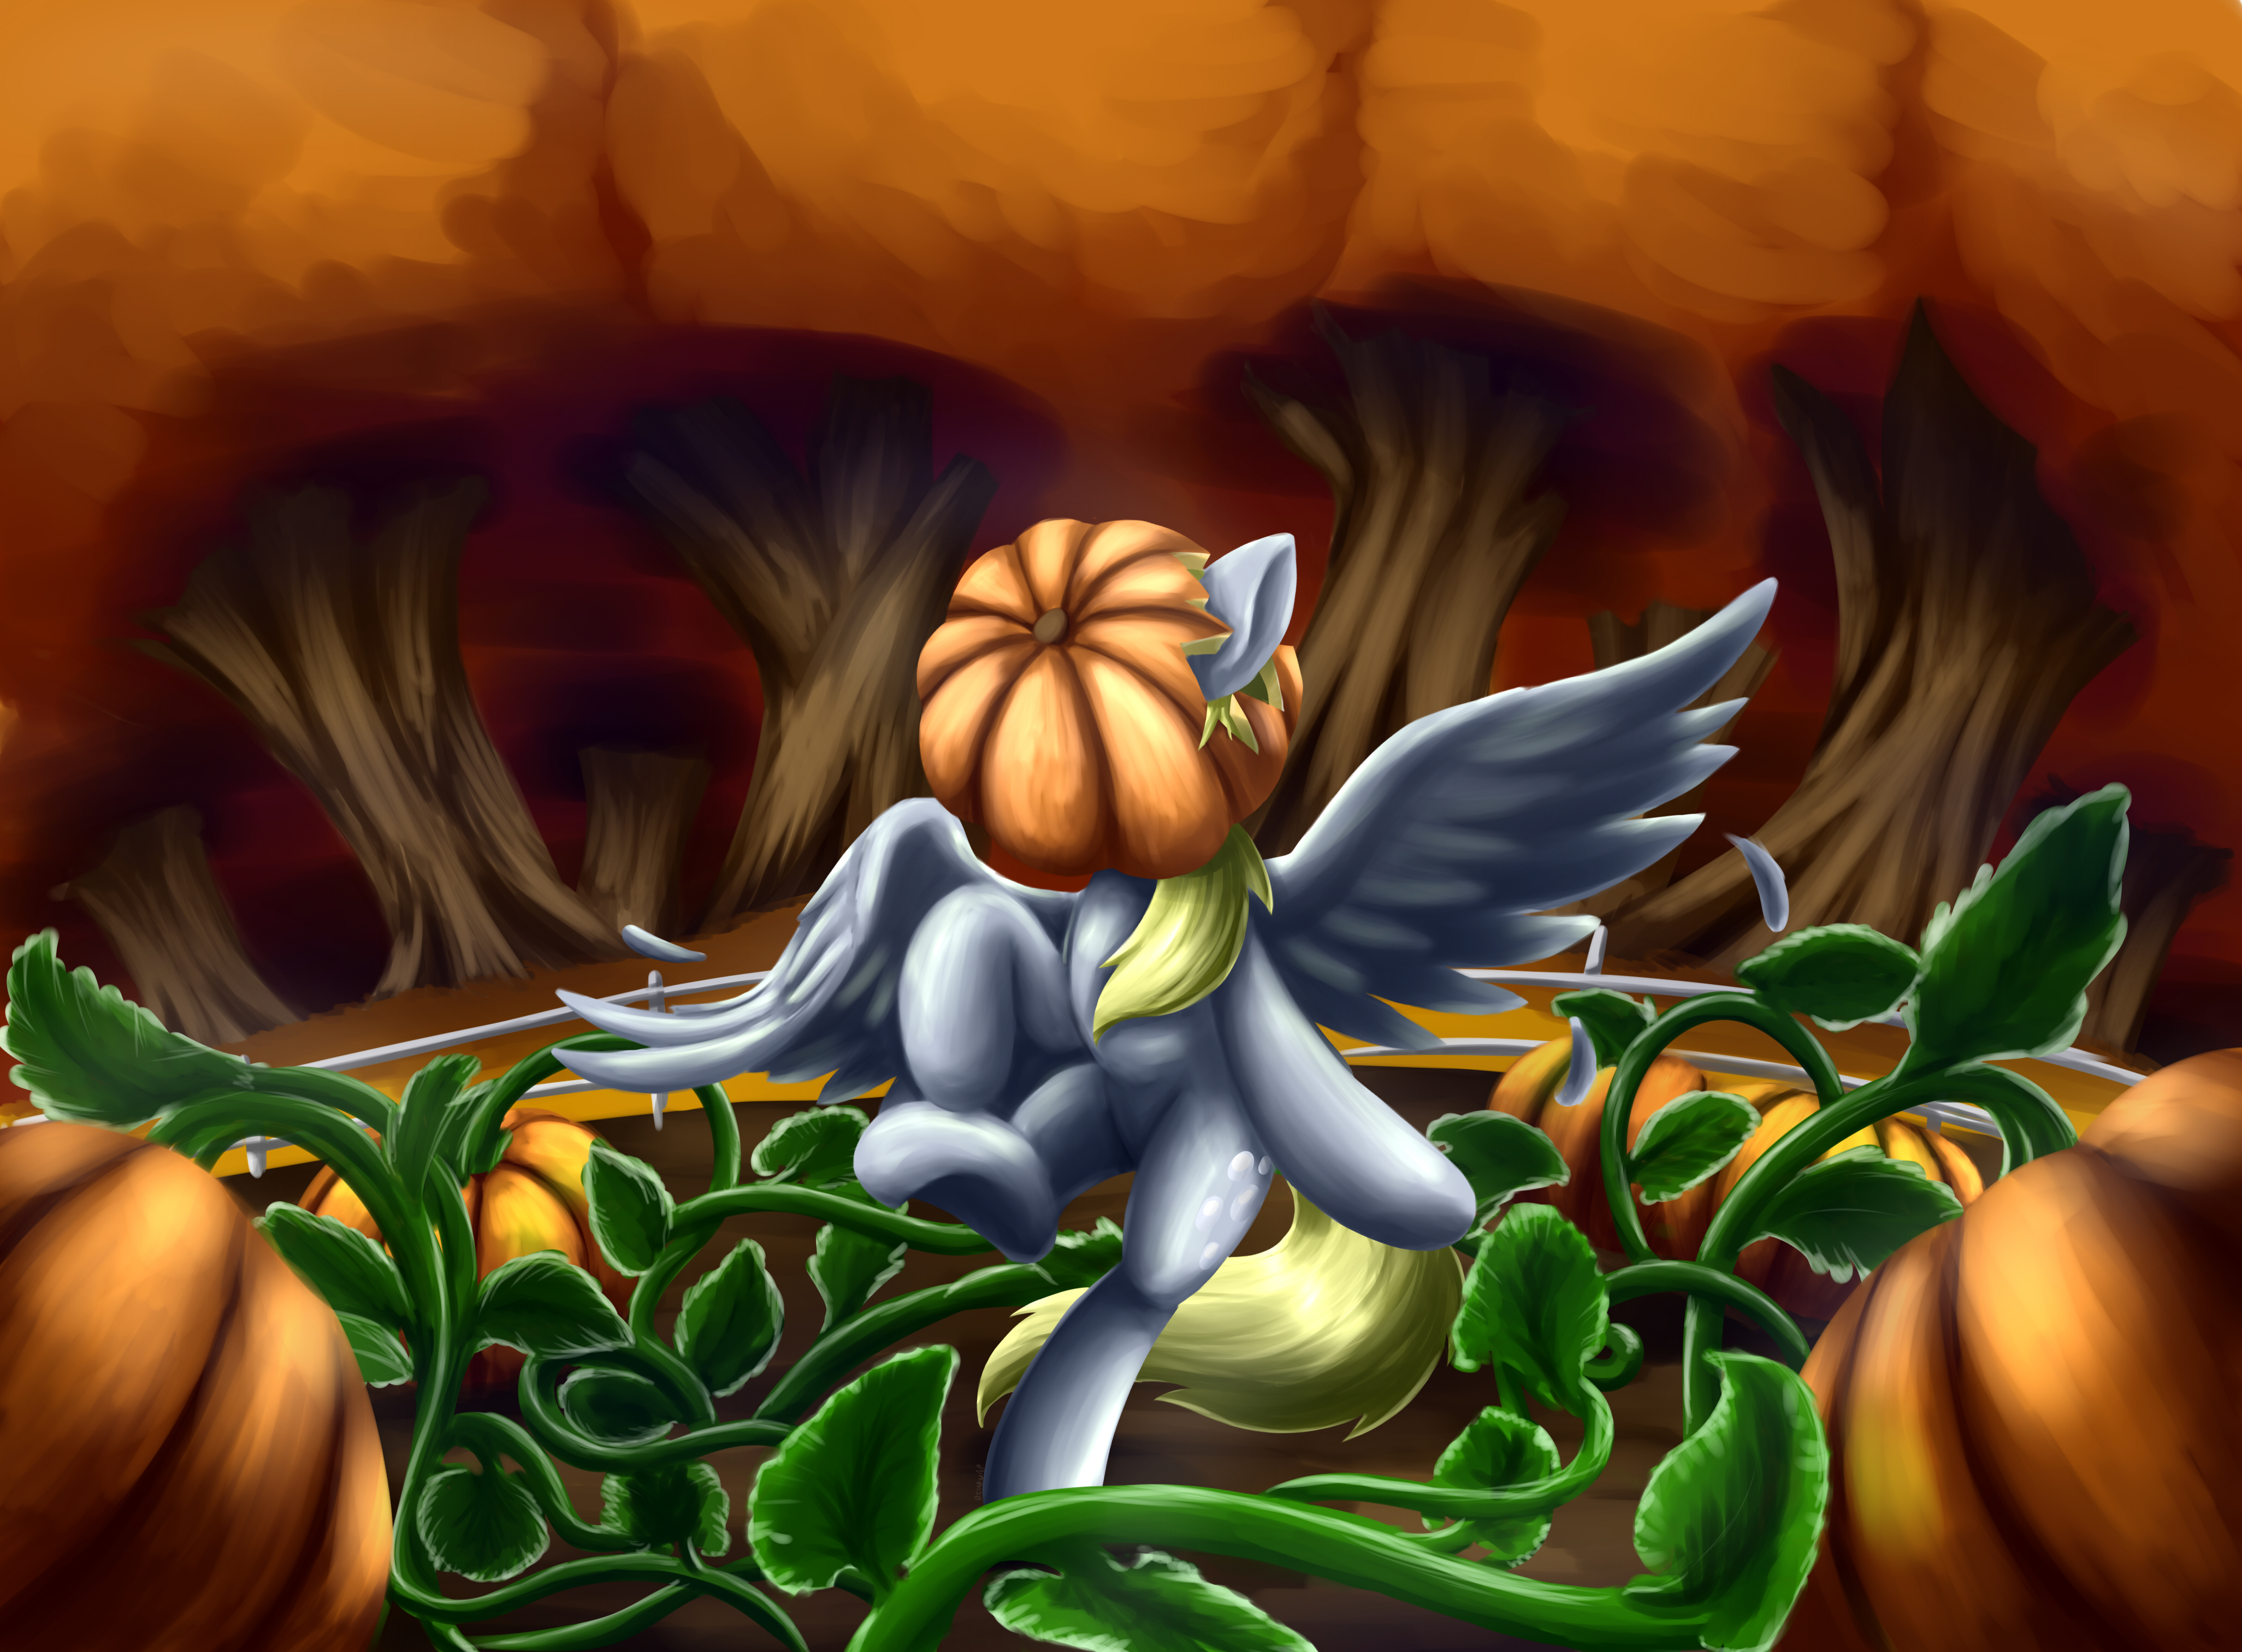 In the pumpkin patch by otakuap